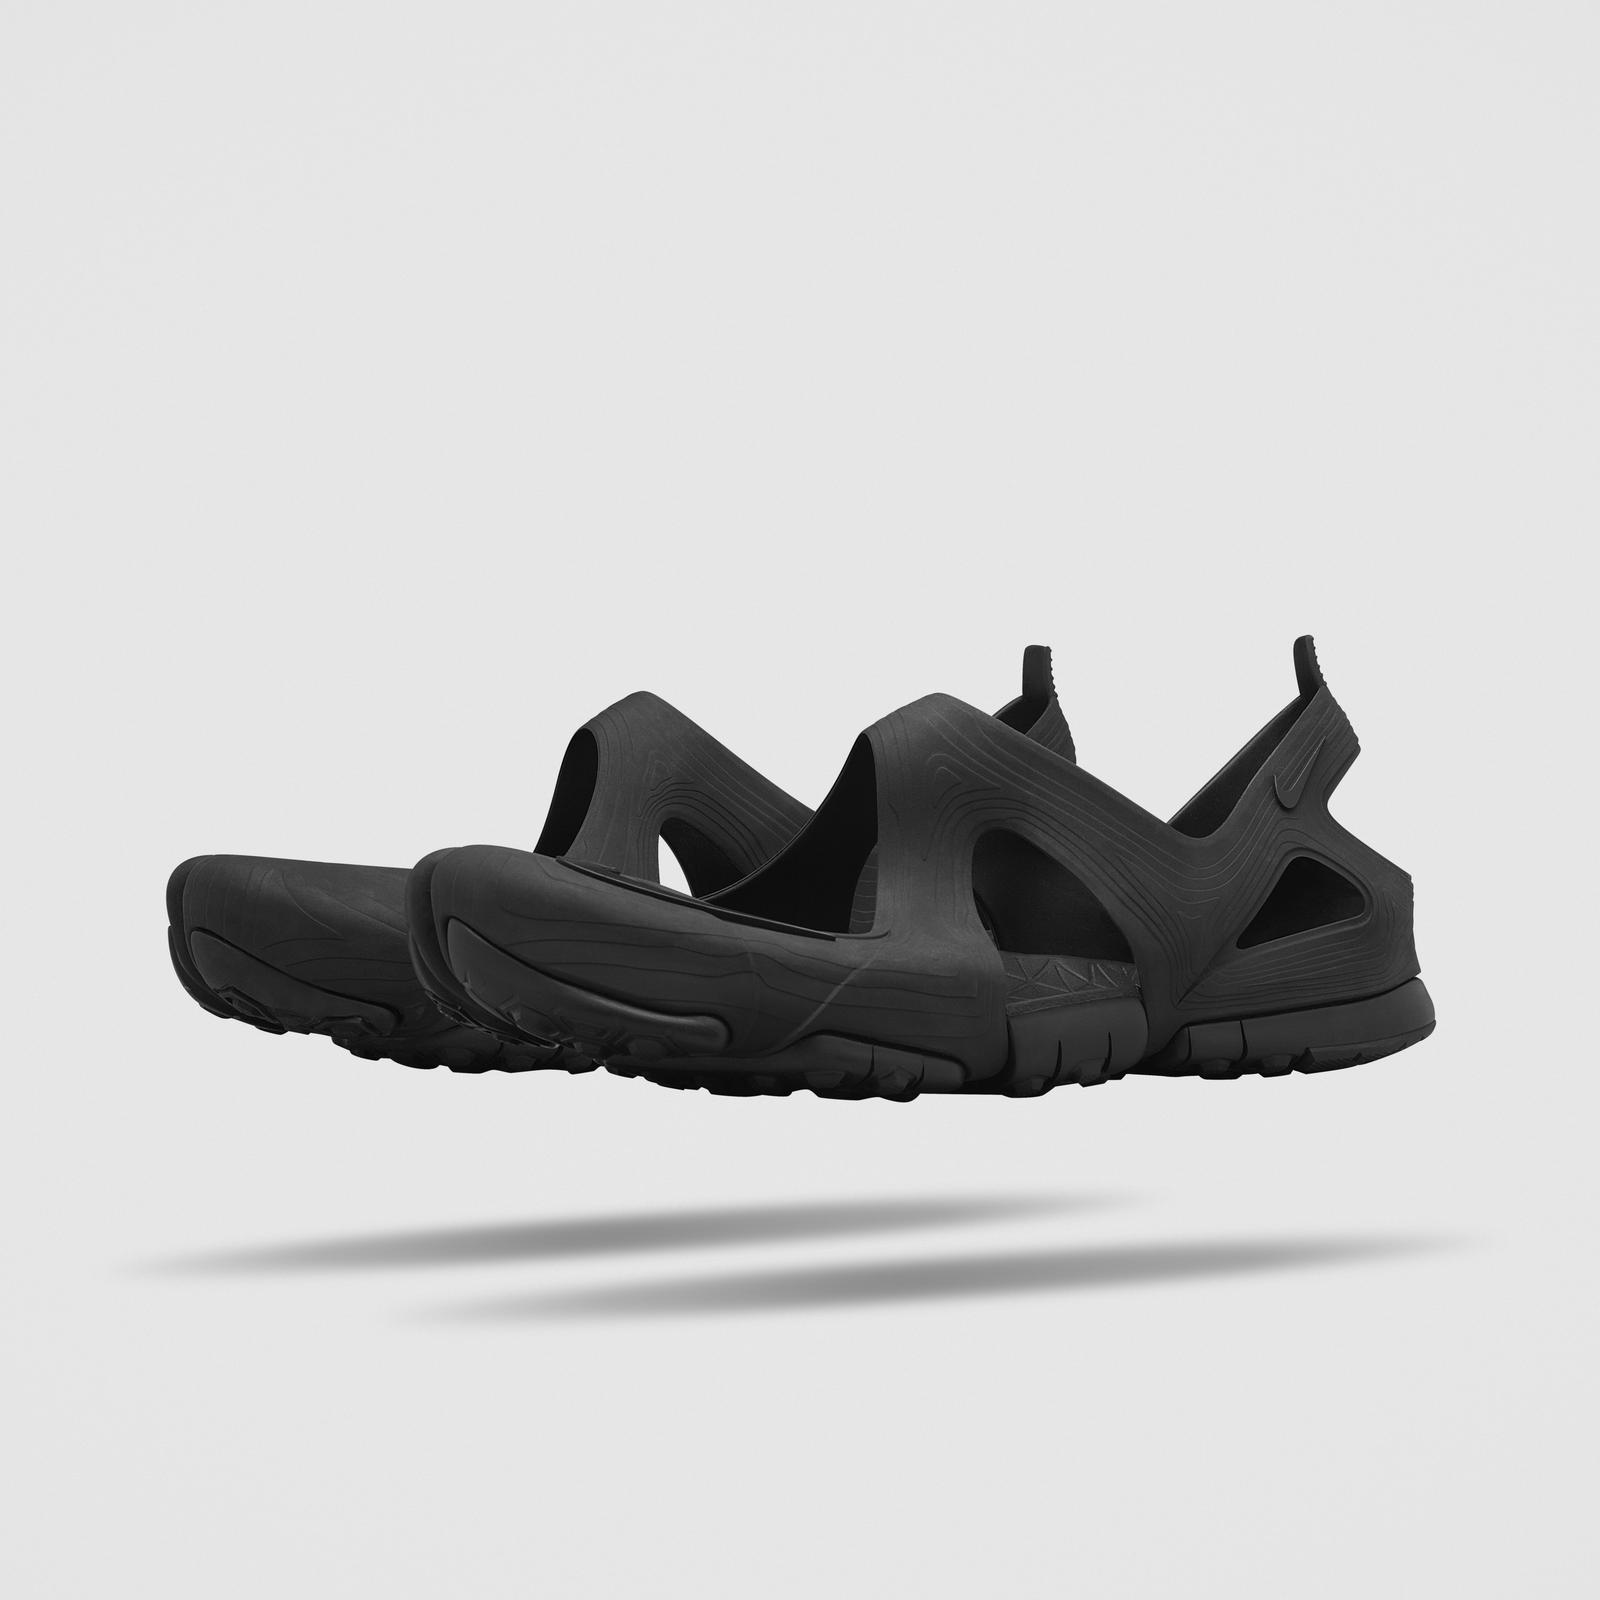 5f92bbfb5 Rift Re-imagined  The NikeLab Free Rift Sandal - Nike News